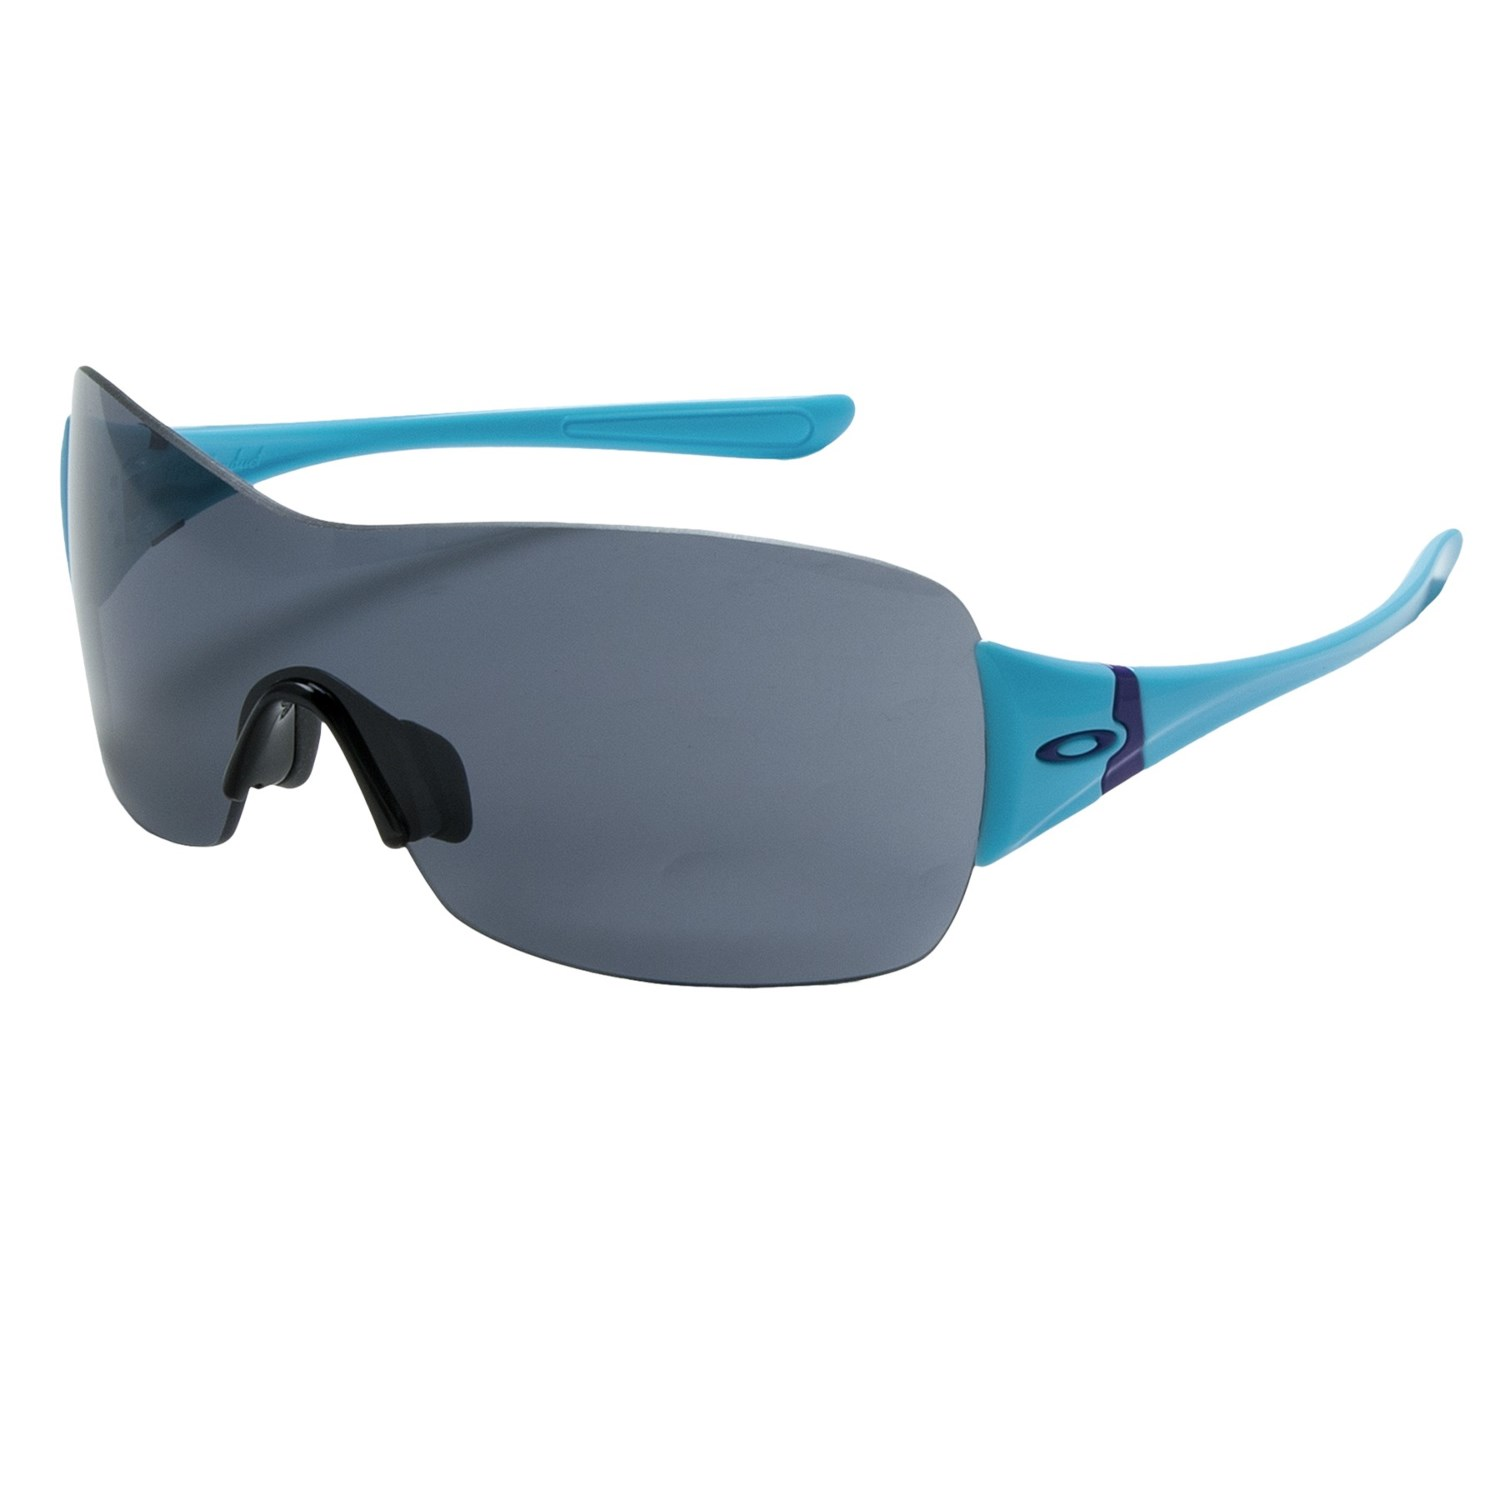 Rem4wdbdrmpmijm Cheap Oakley Sunglasses